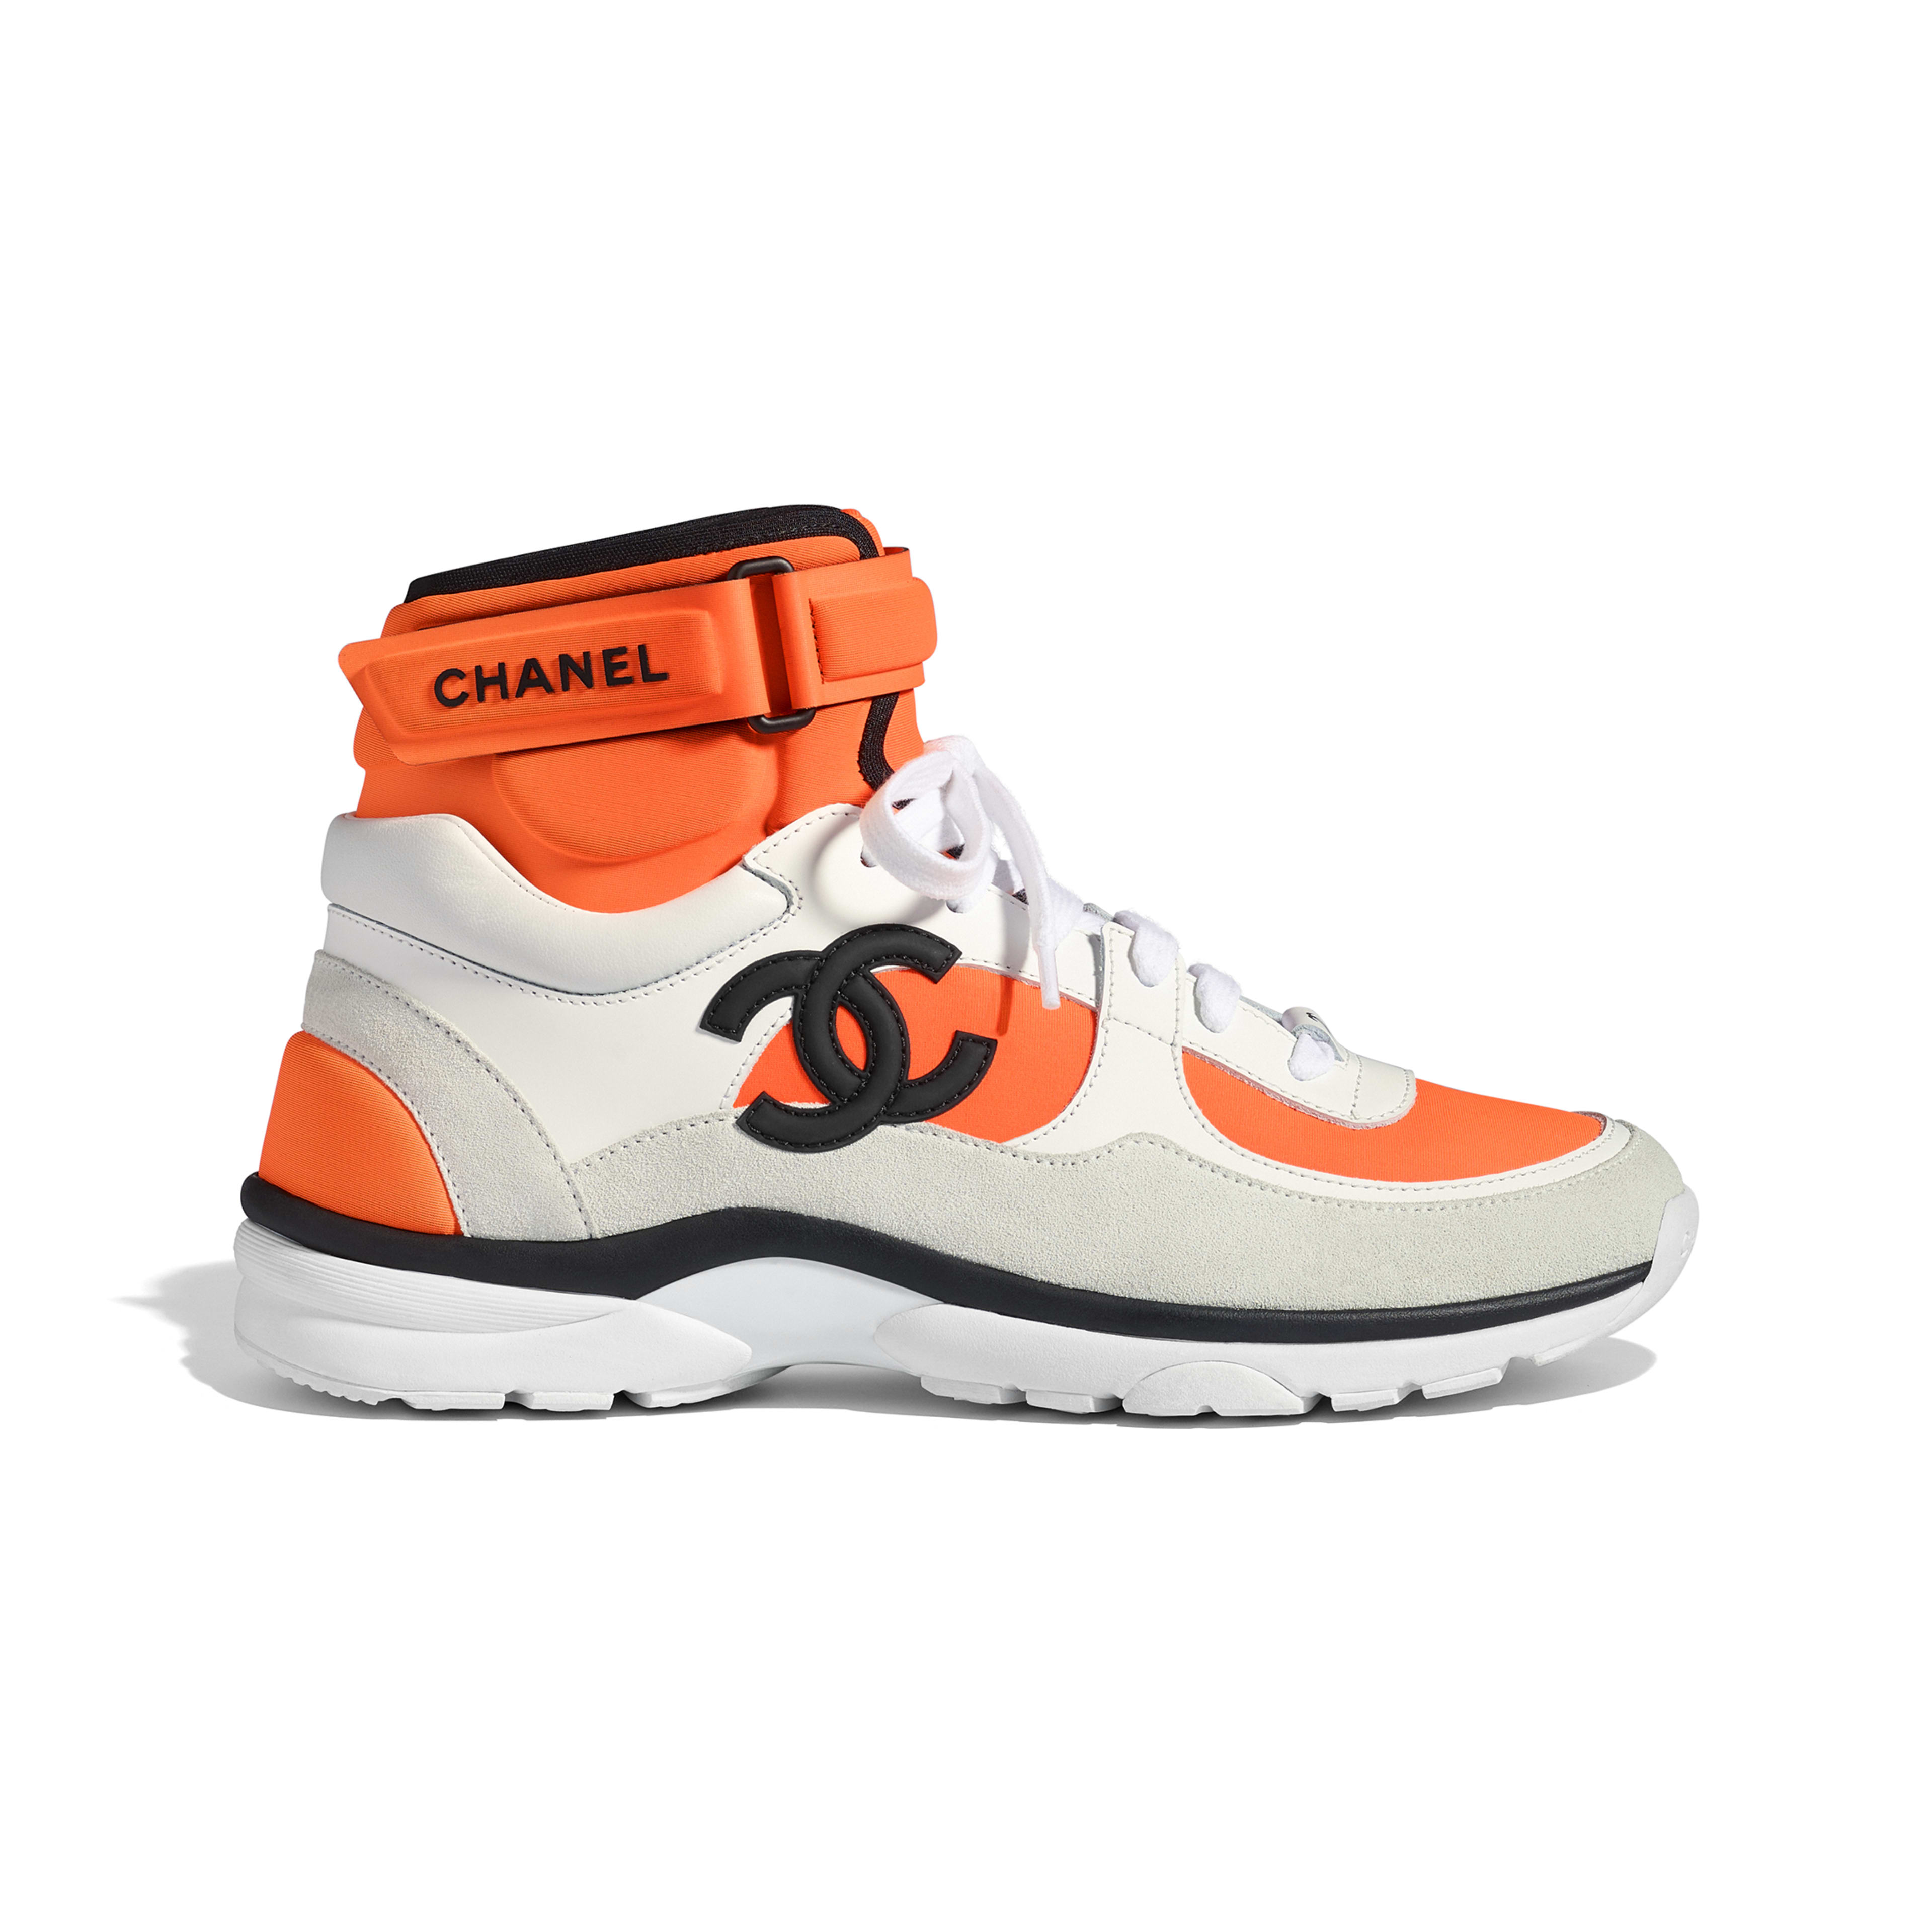 Sneakers Fabric, Lambskin & Suede Calfskin White & Orange -                                  view 1 - see full sized version